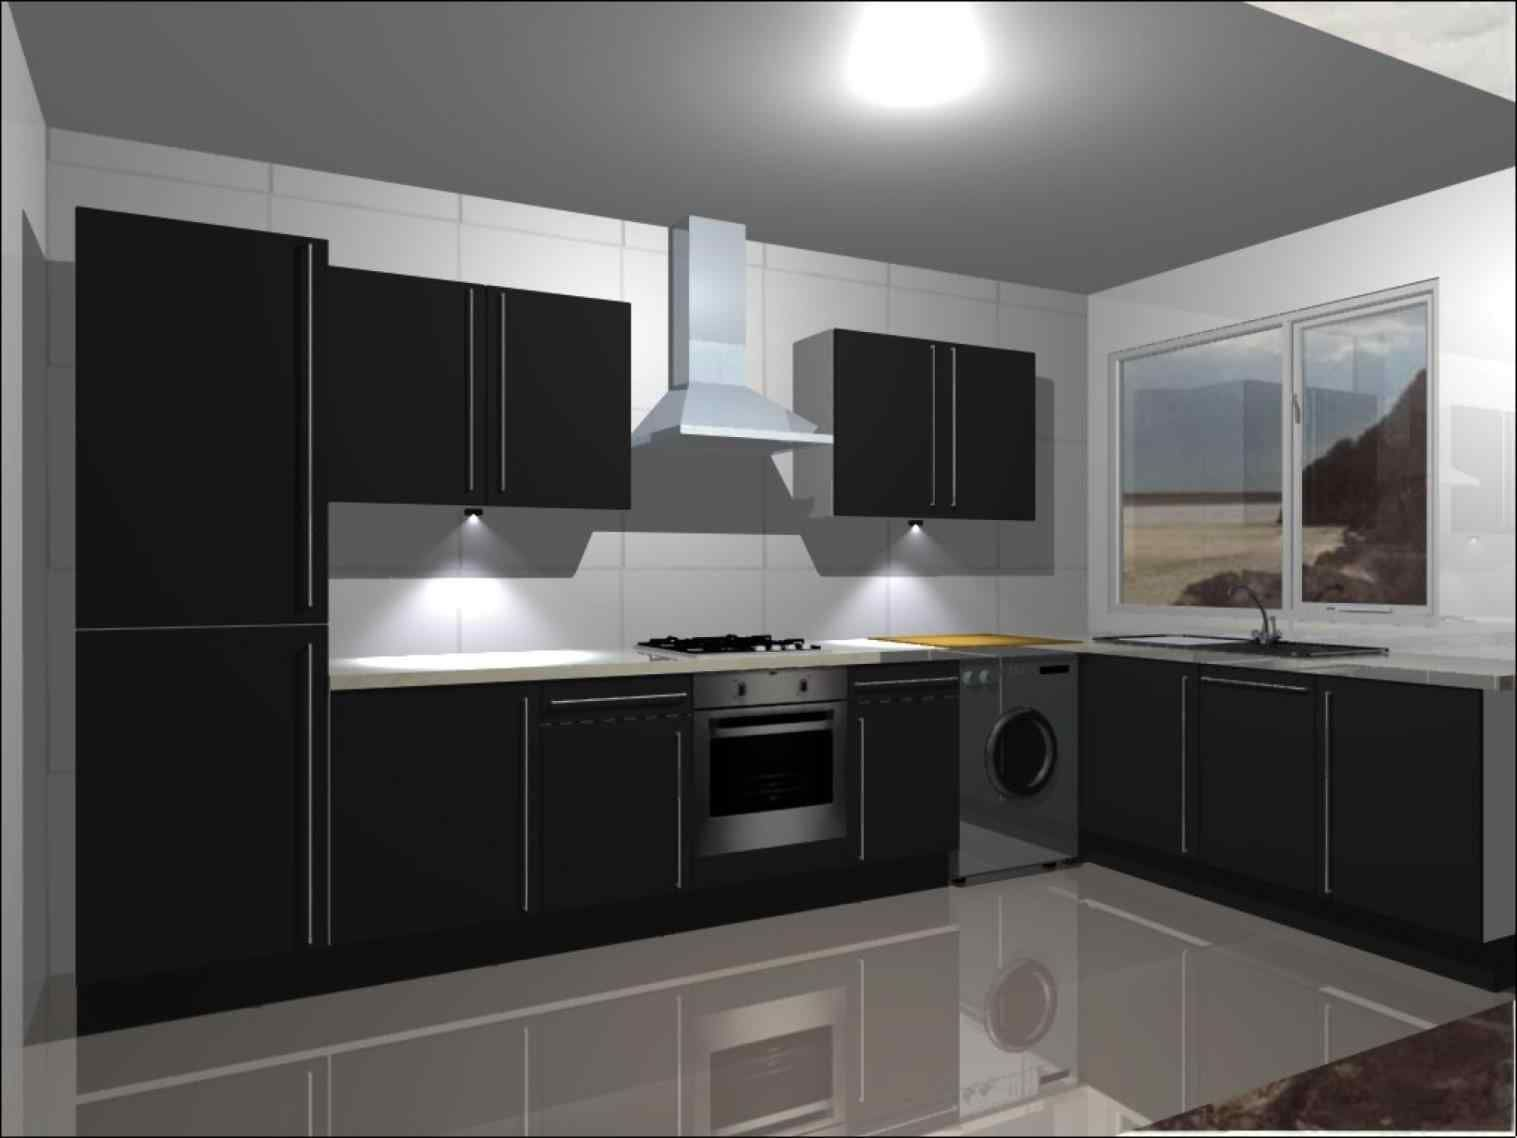 Awesome 13 Black Shiny Kitchen Cabinets Ideas For Stunning ...